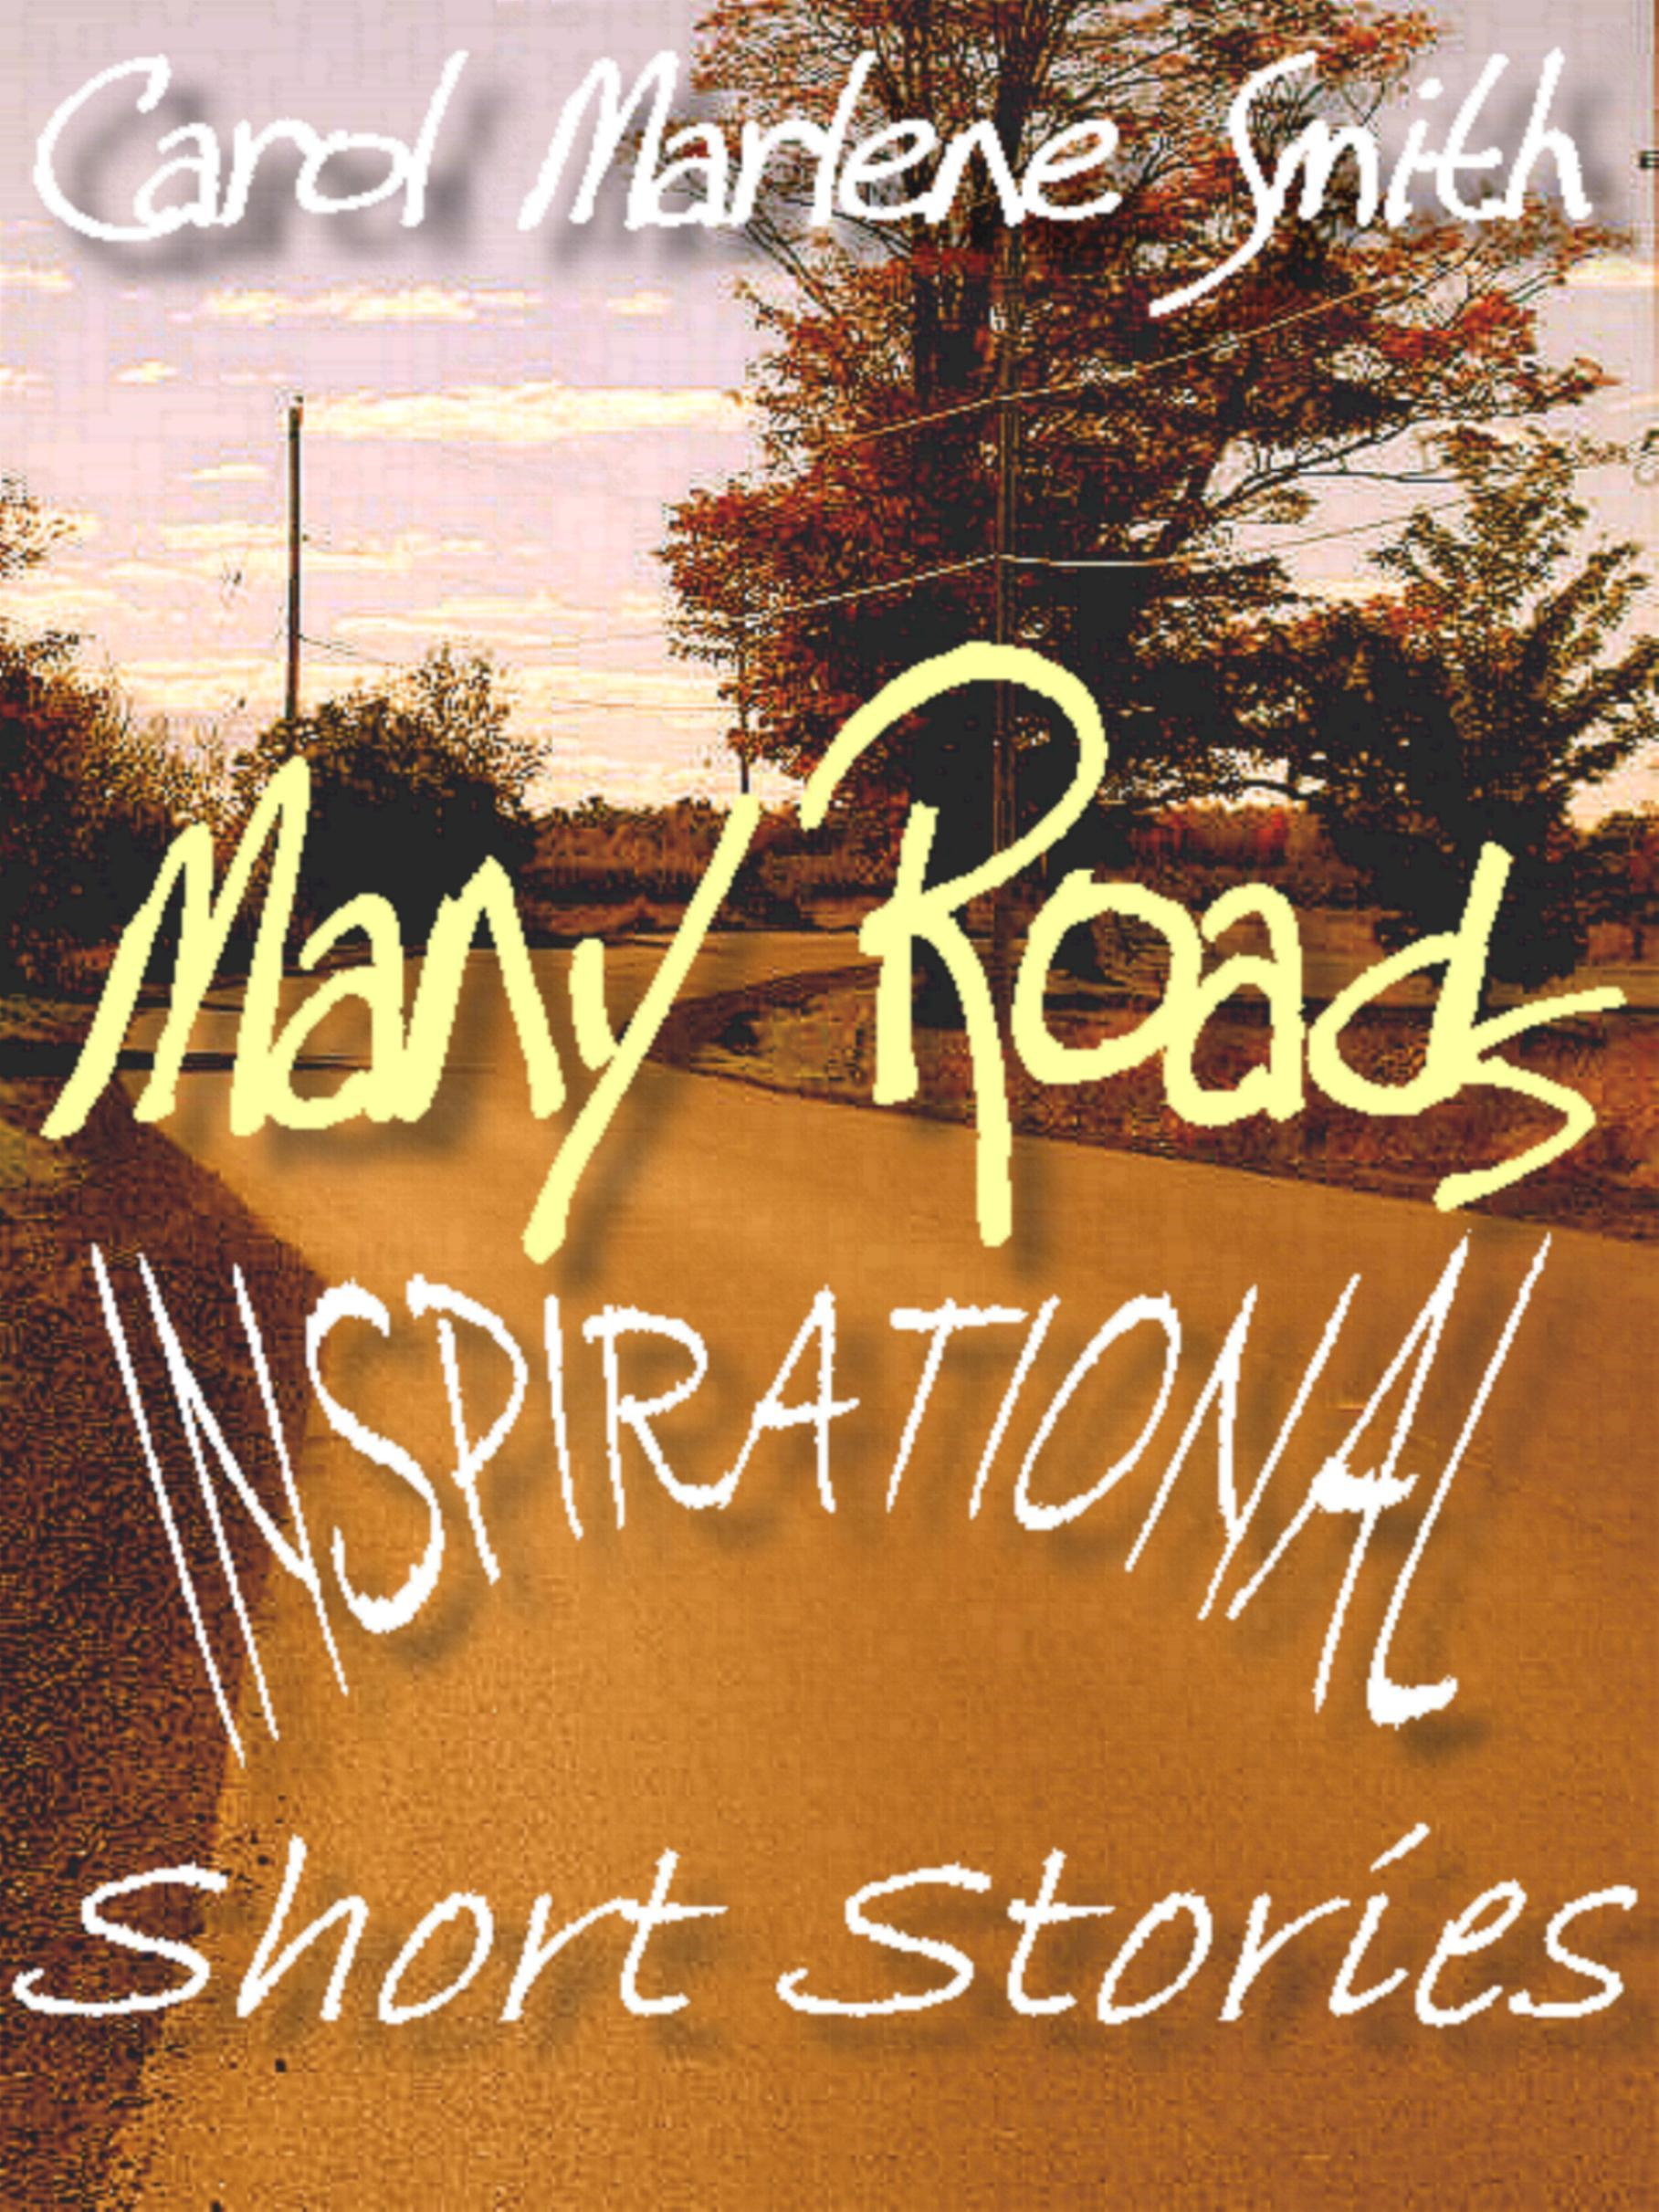 Many Roads: Inspirational Short Stories